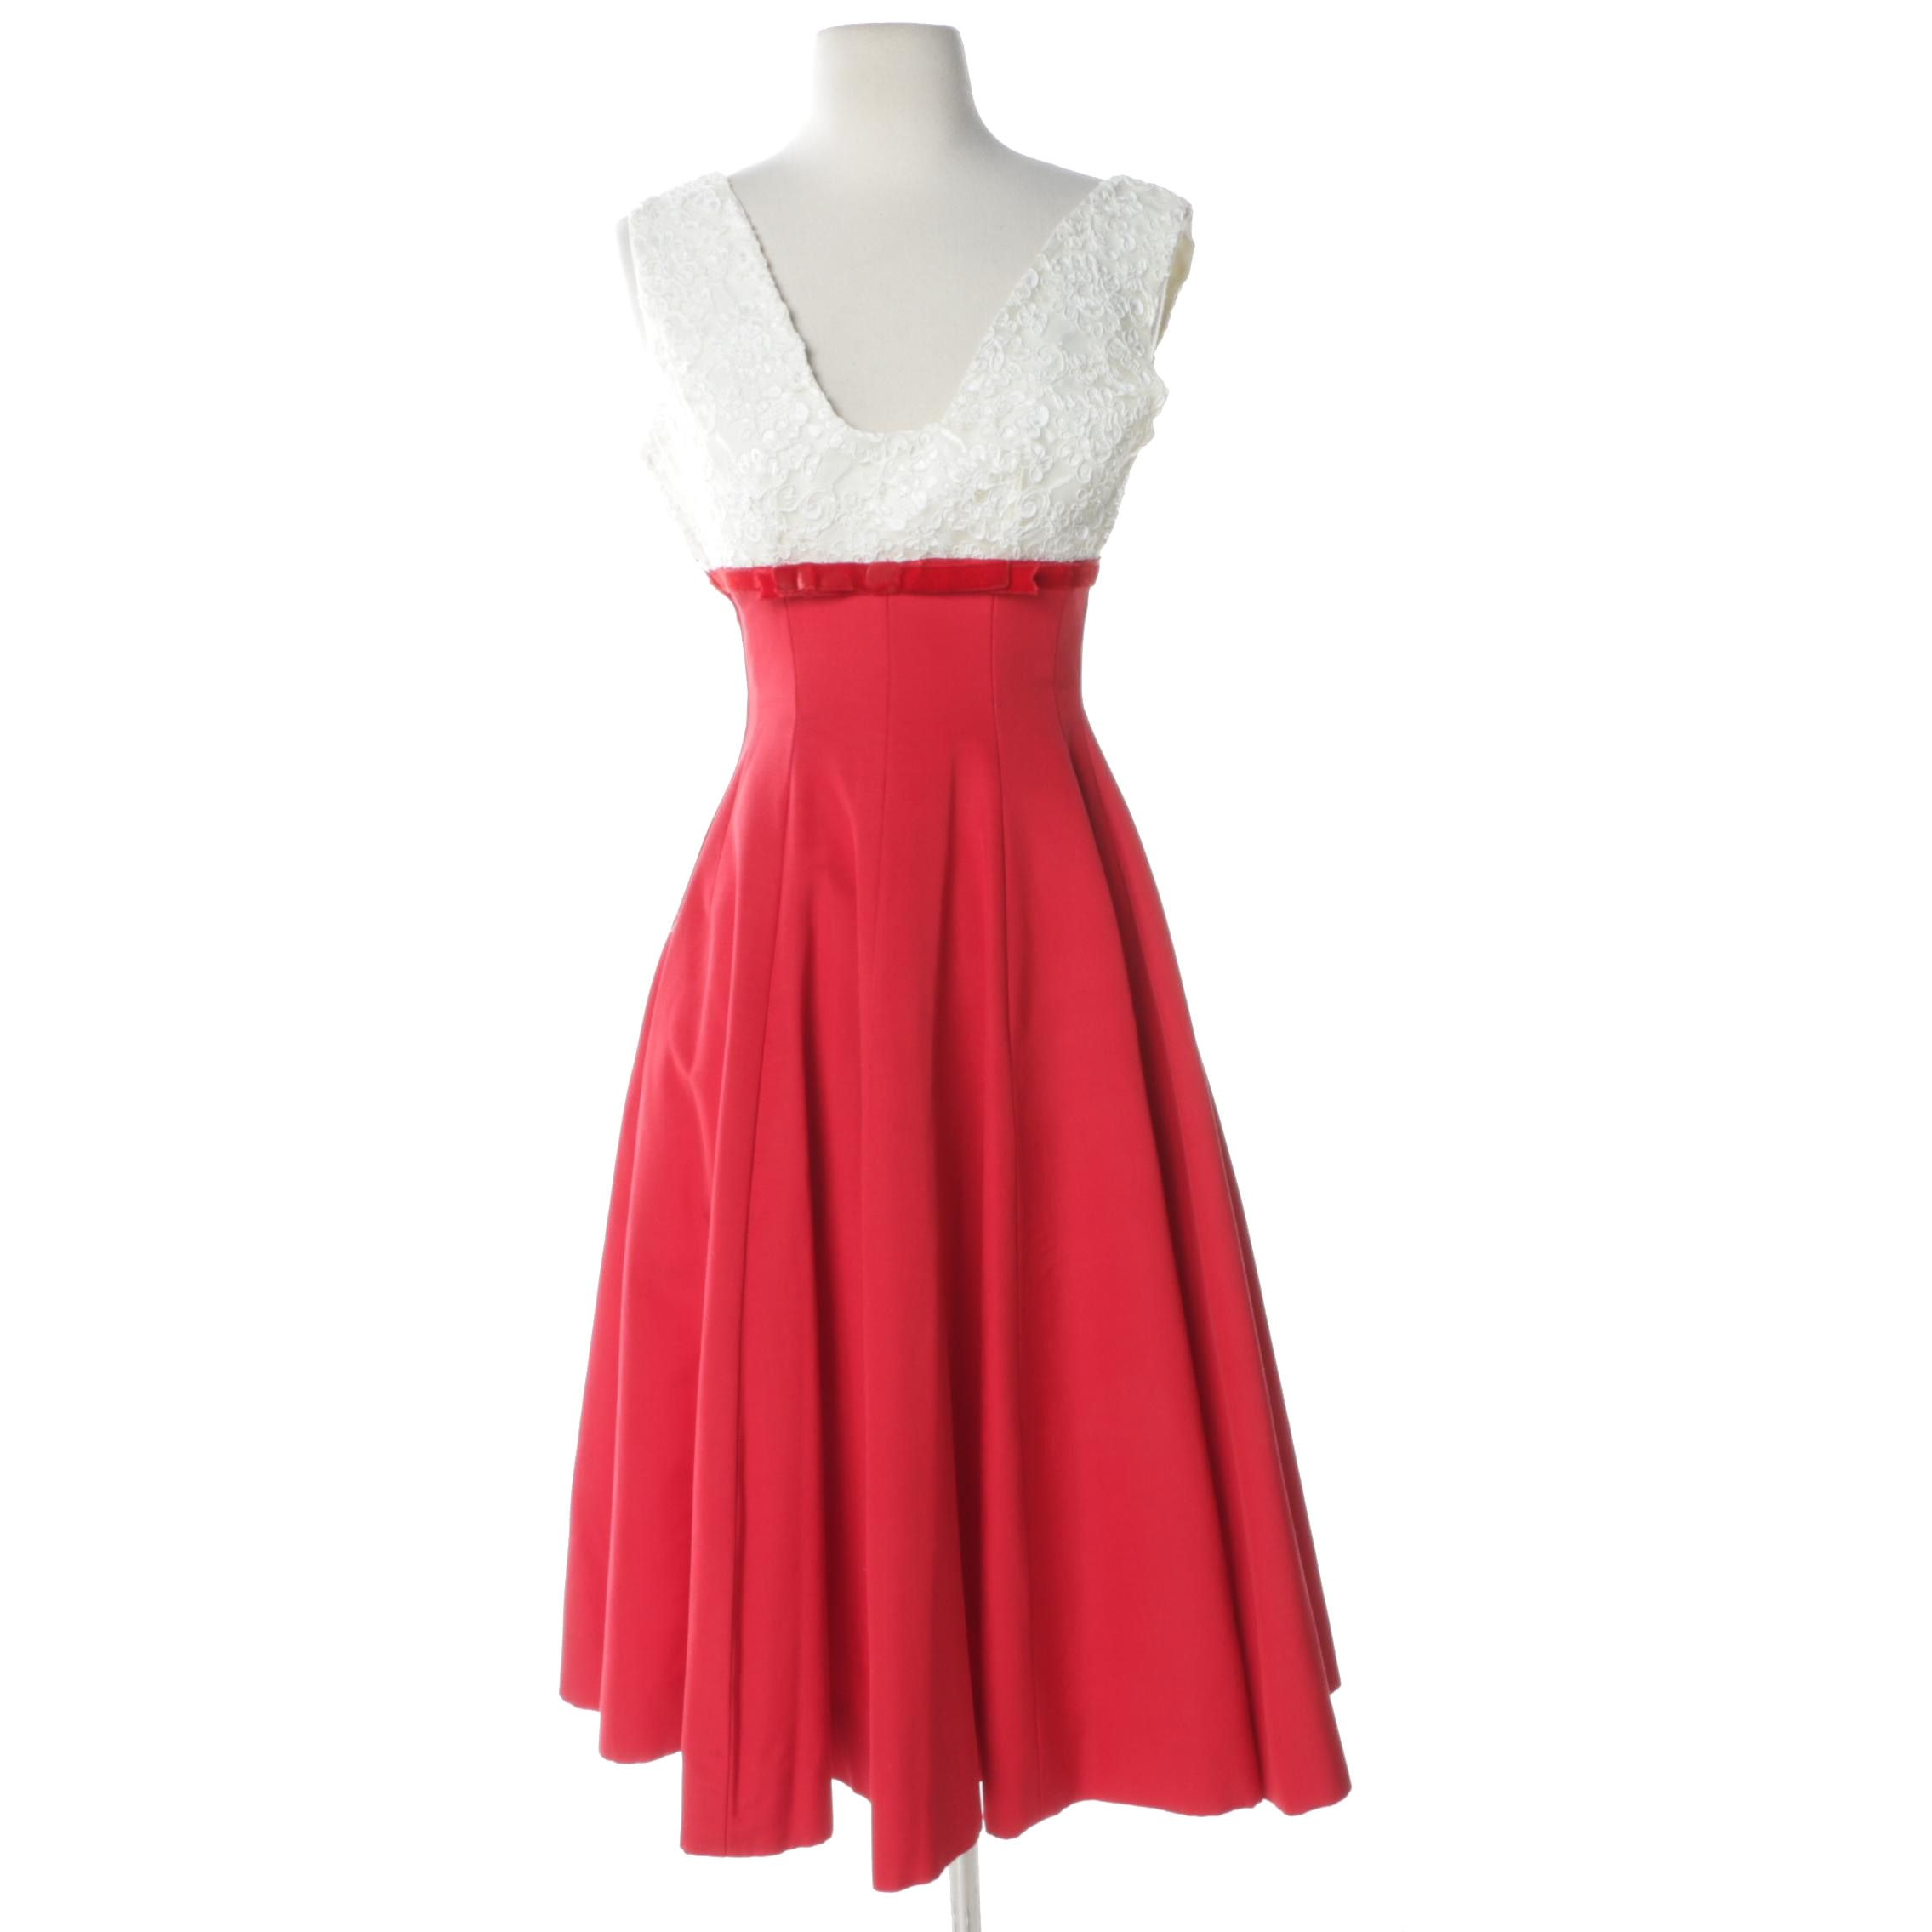 1960s Red Silk and White Lace Evening Dress